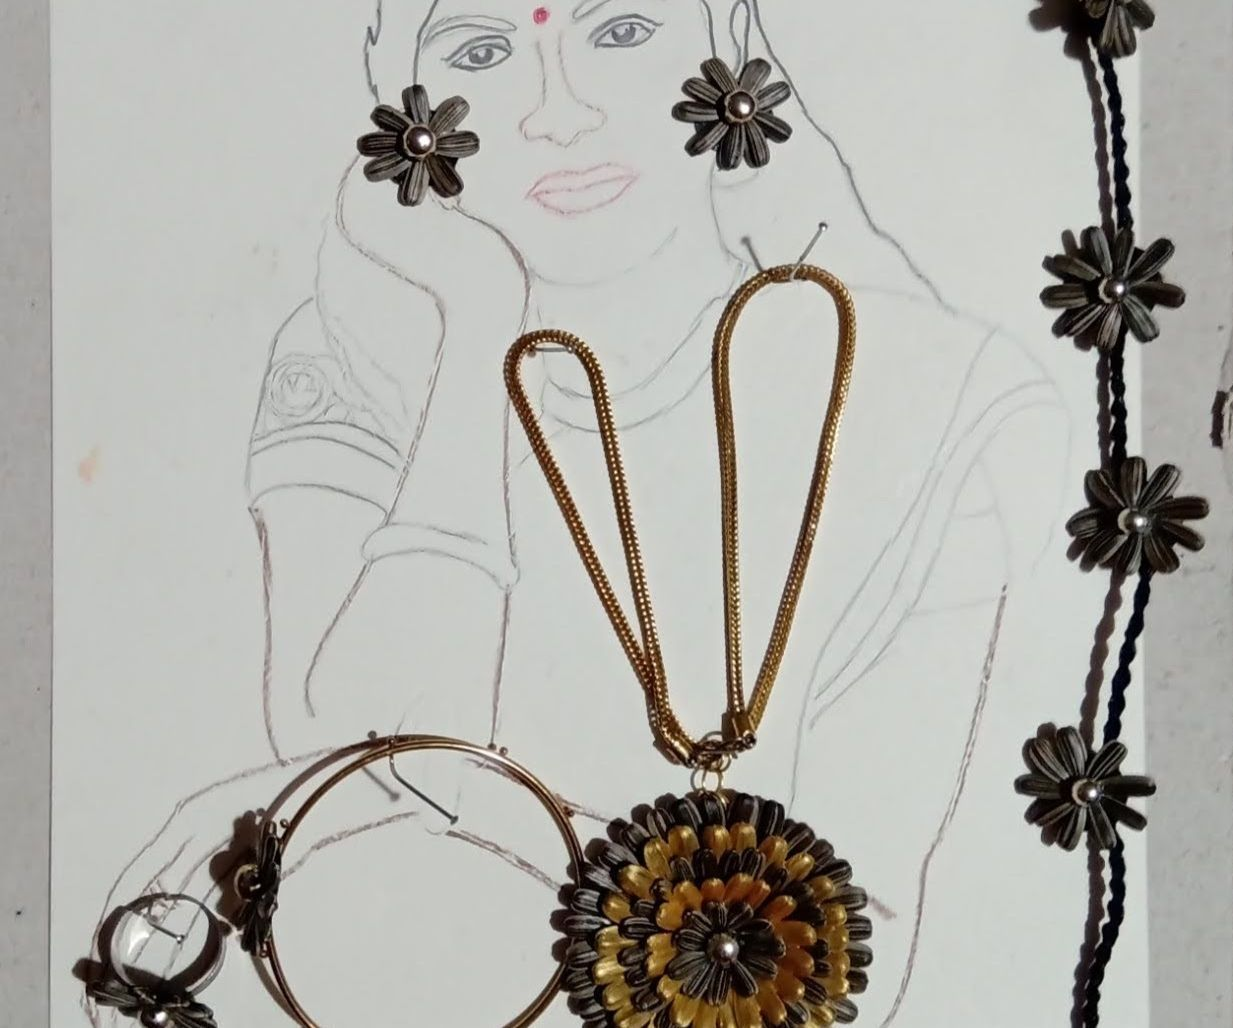 Jewelry(Ear Stud, Neck Piece, Ring, Anklet, Forehead Jewel) Made of Sunflower Seeds!